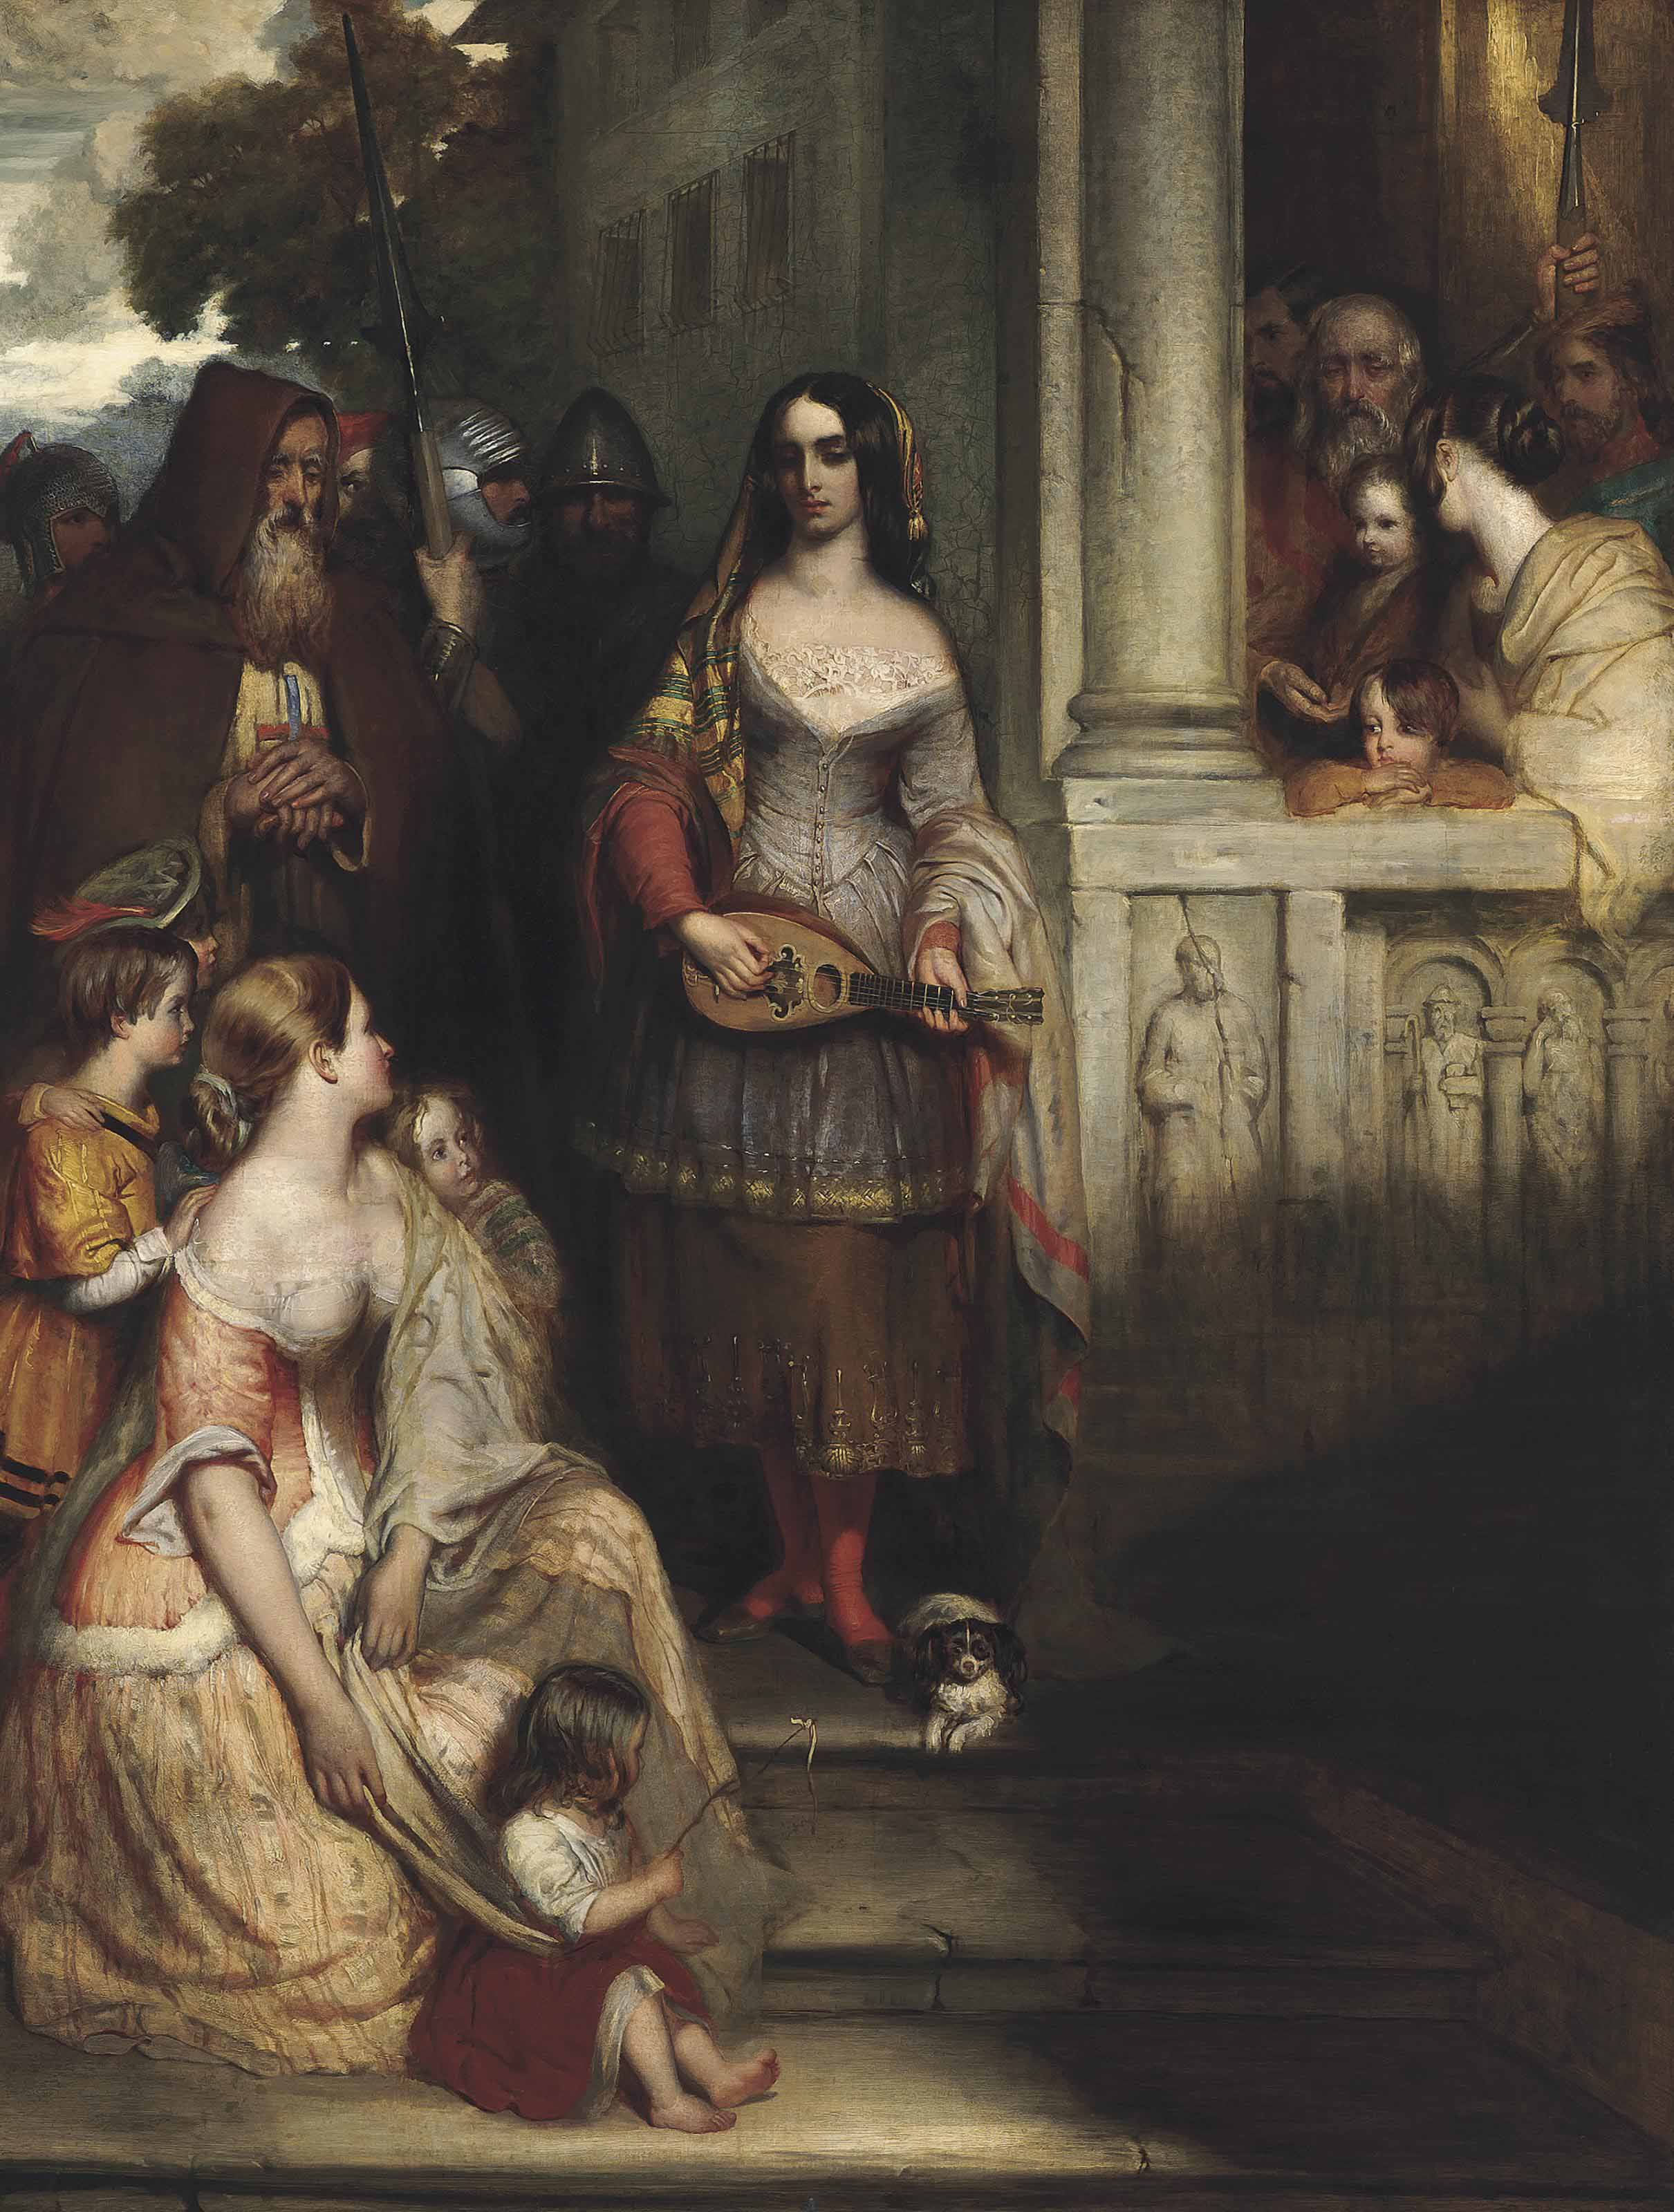 Poor Louise, the Gleemaiden: an illustration from Sir Walter Scott's 'Fair Maid of Perth'